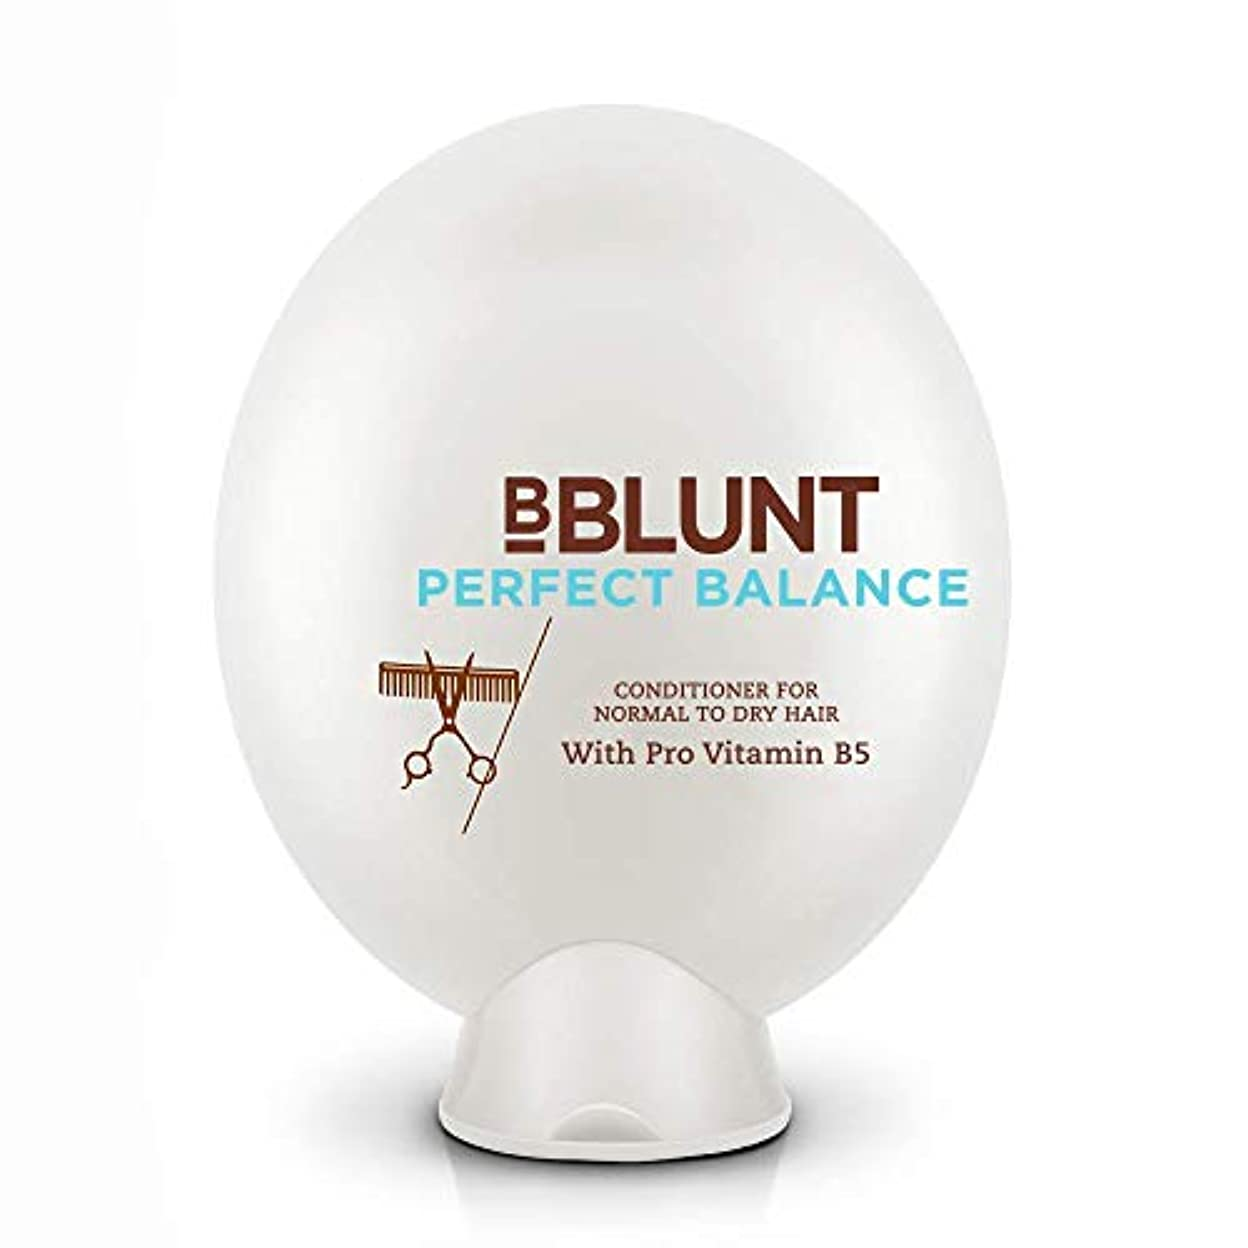 BBLUNT Perfect Balance Conditioner for Normal To Dry Hair, 200g (Provitamin B5)